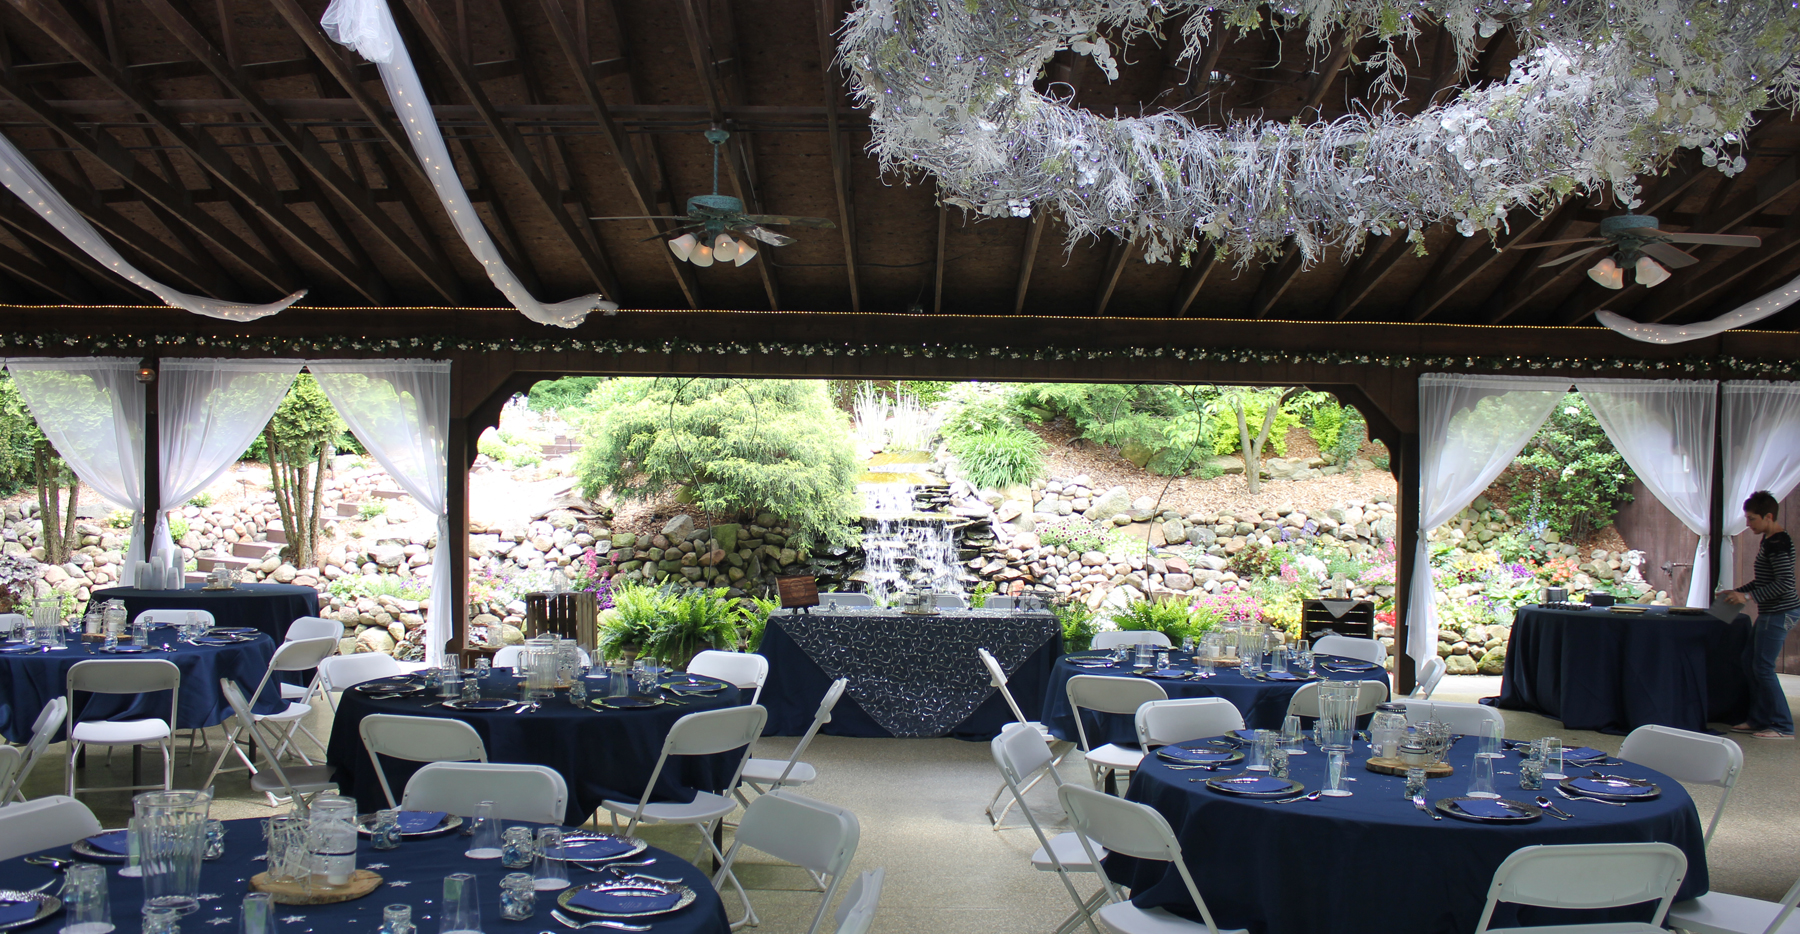 Decorated reception hall with waterfall in the background